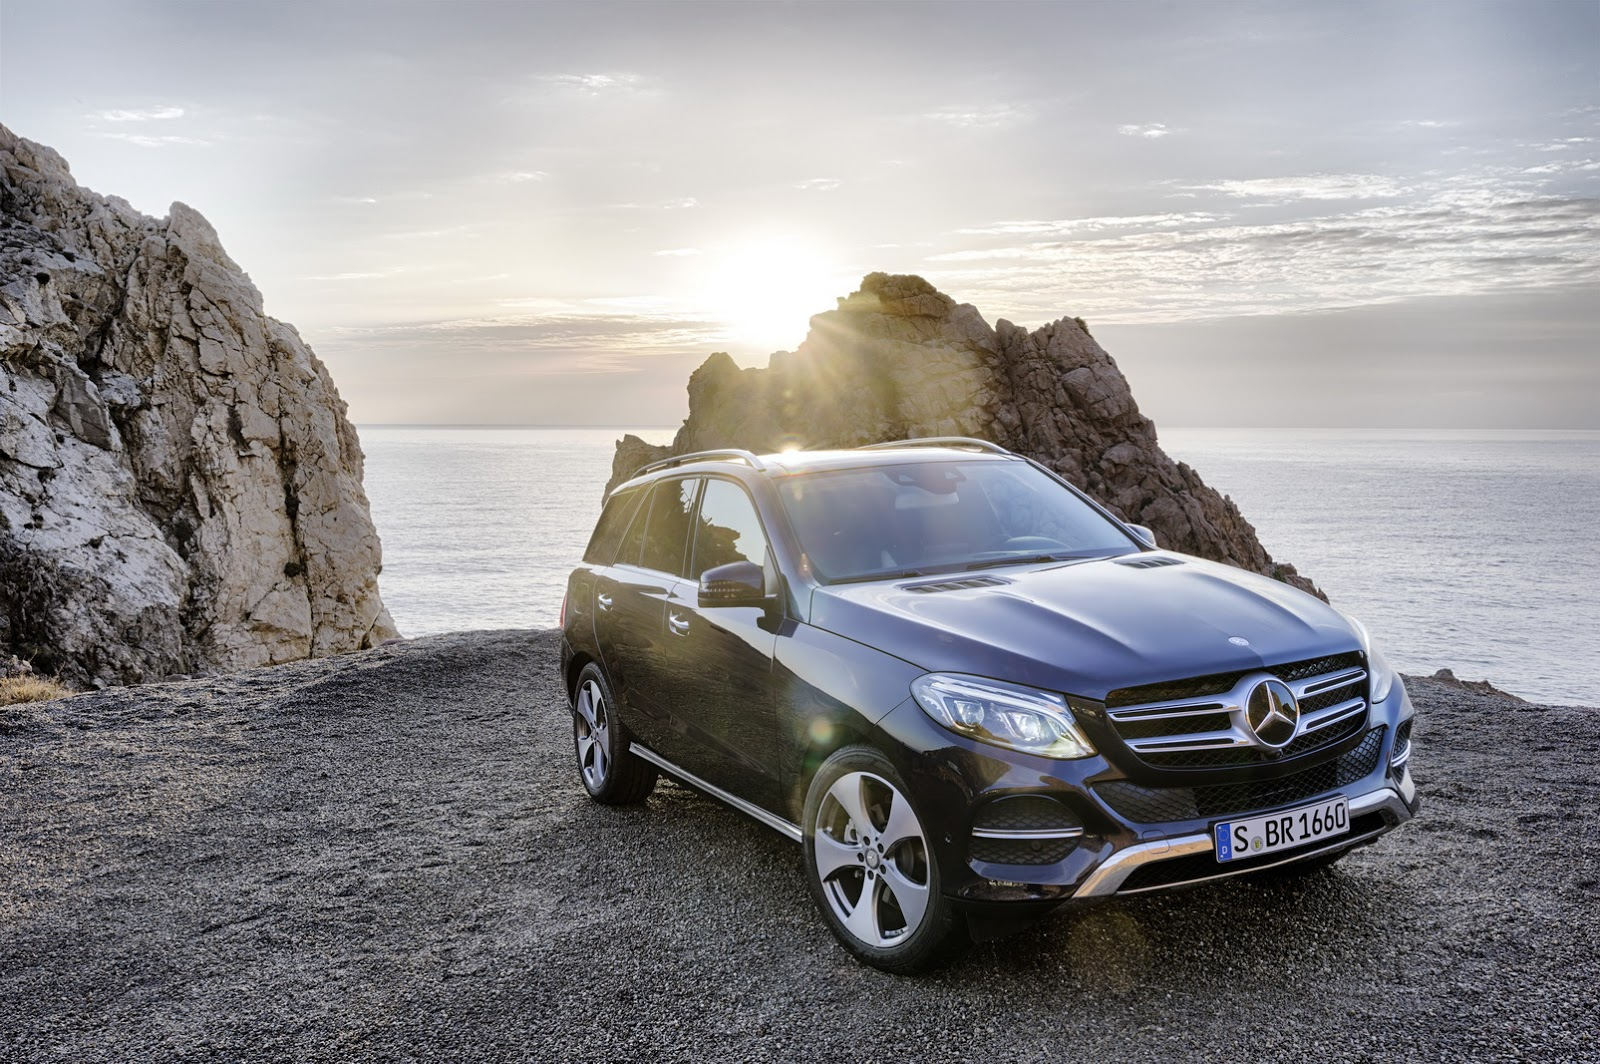 Mercedes Benz GLE SUV photo gallery